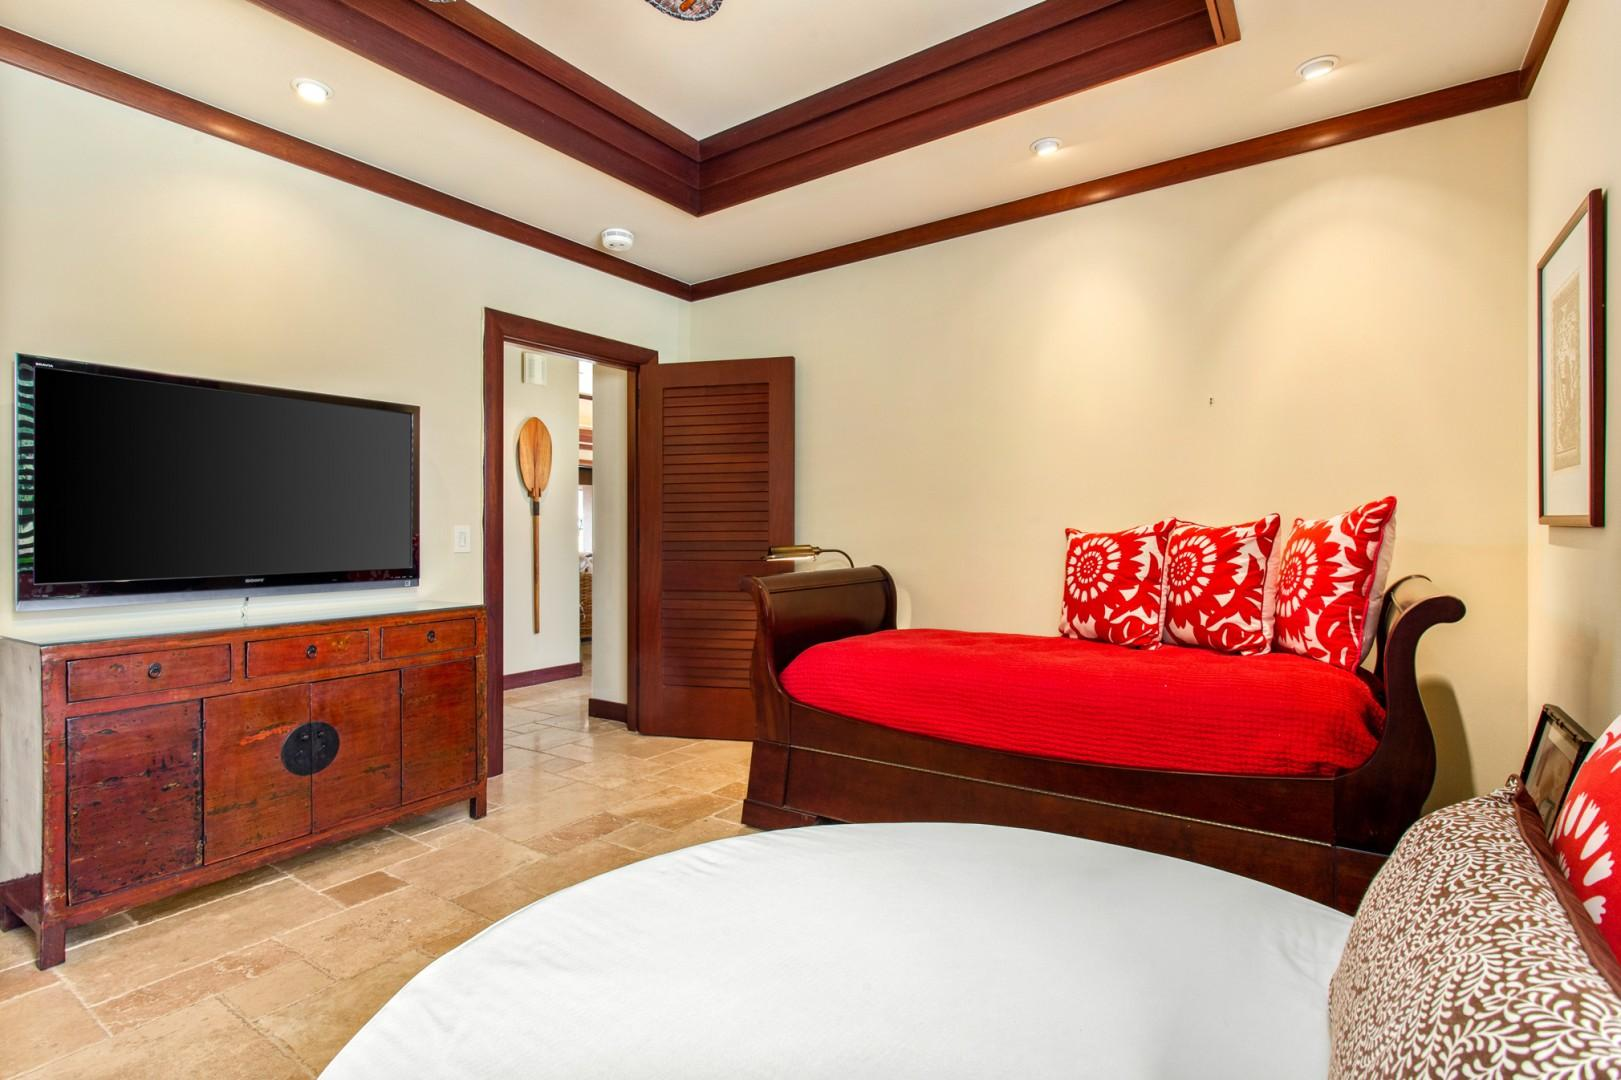 Alternate view of bedroom suite #3 showcasing wall mounted flat-screen cable television.